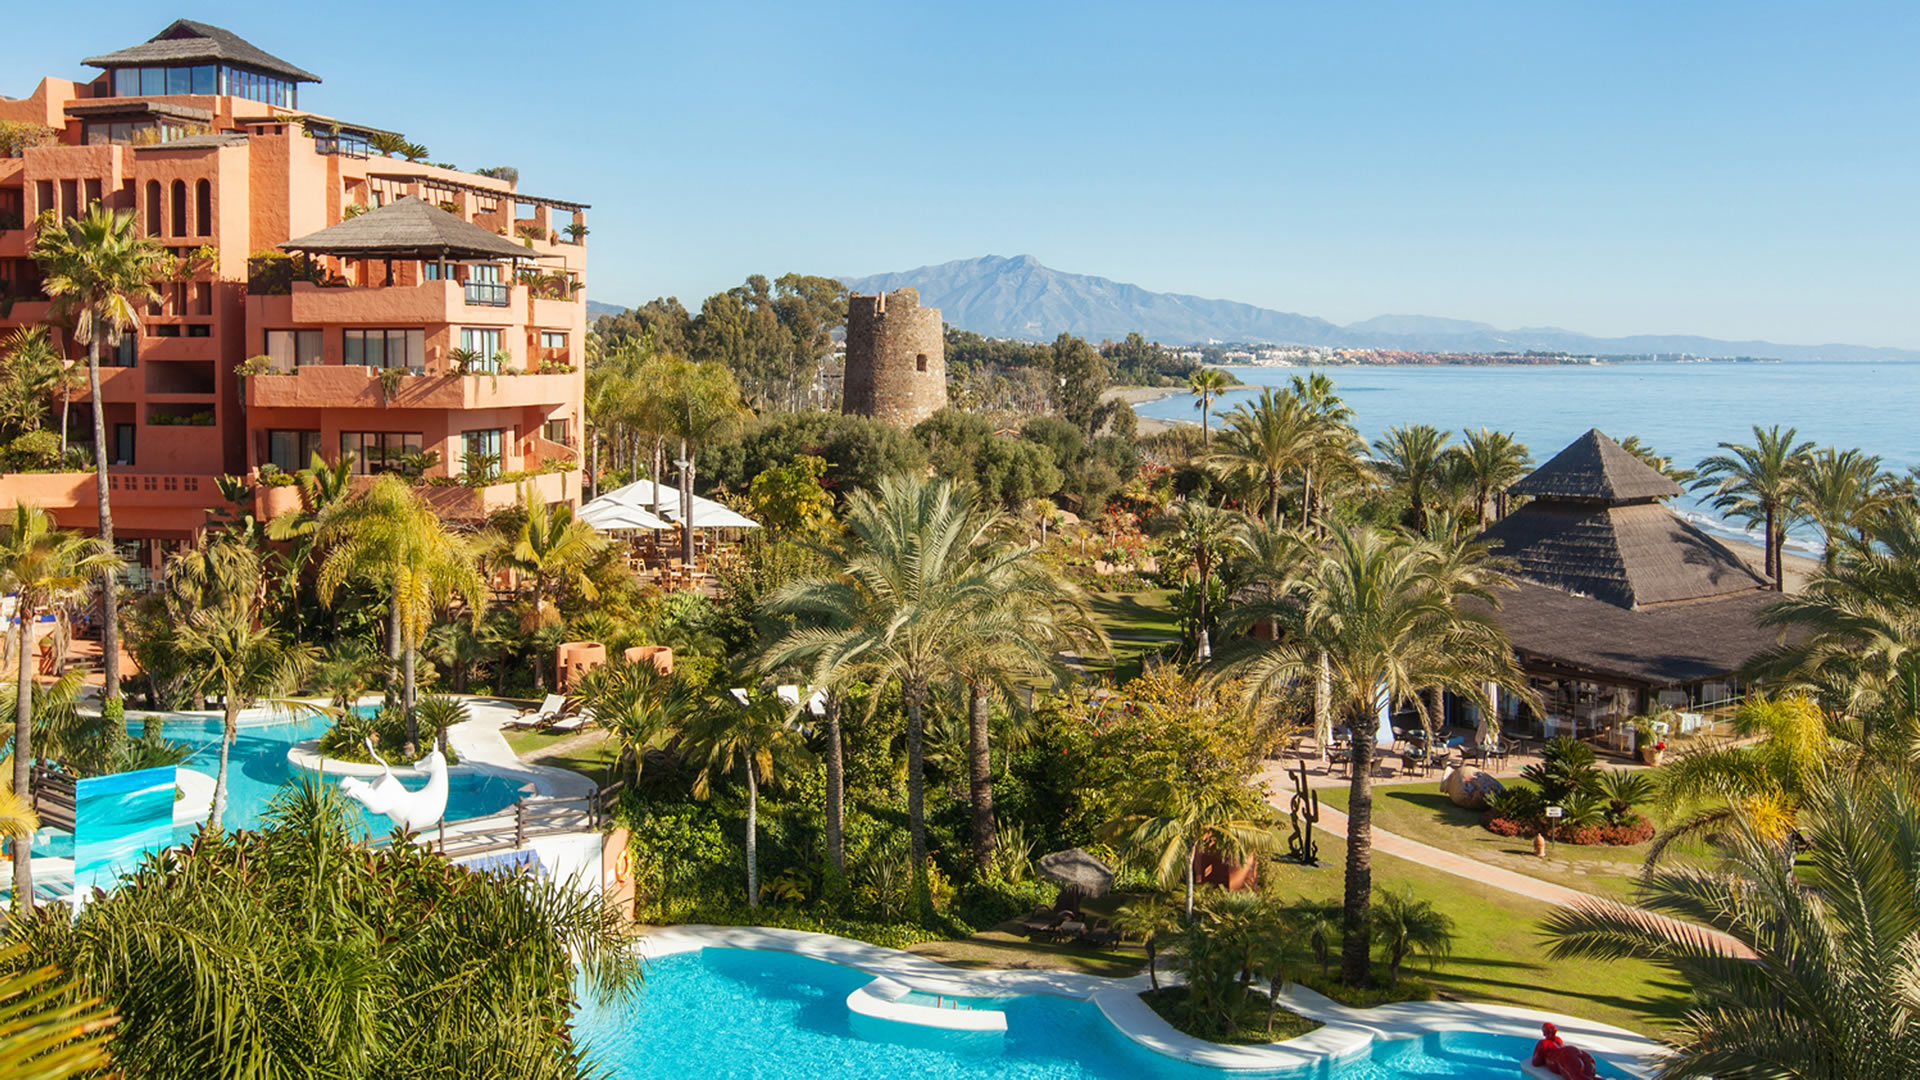 Kempinski hotel bahia in estepona luxury 5 star resort for Hotels malaga